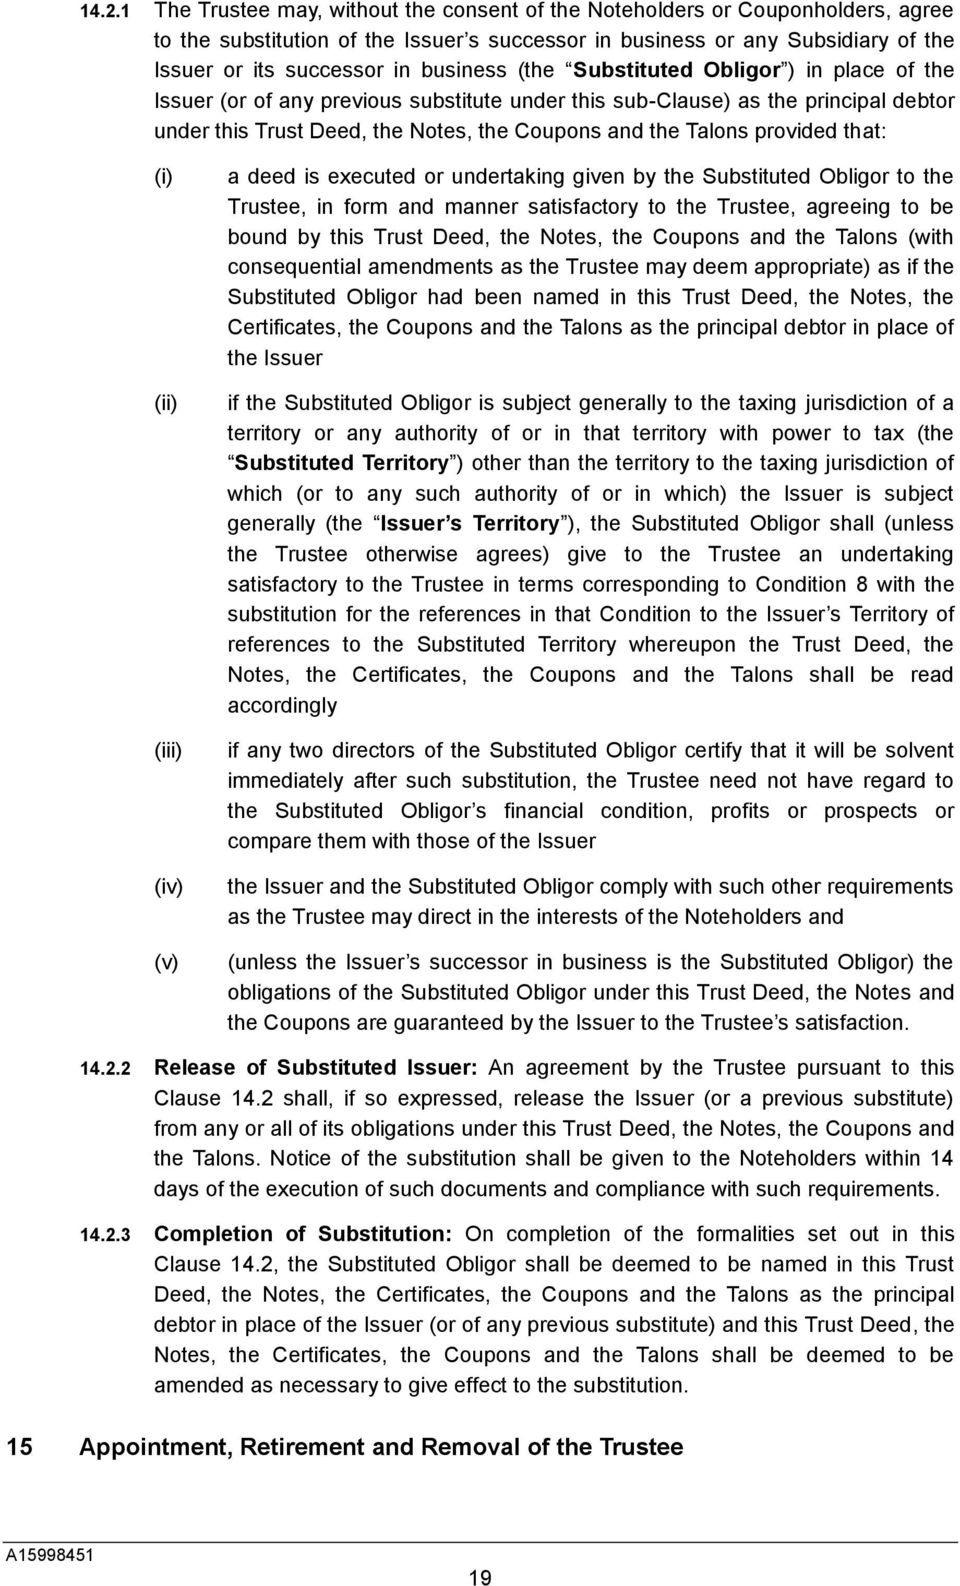 Dated 24 January 2013 ENQUEST PLC  and U S  BANK TRUSTEES LIMITED